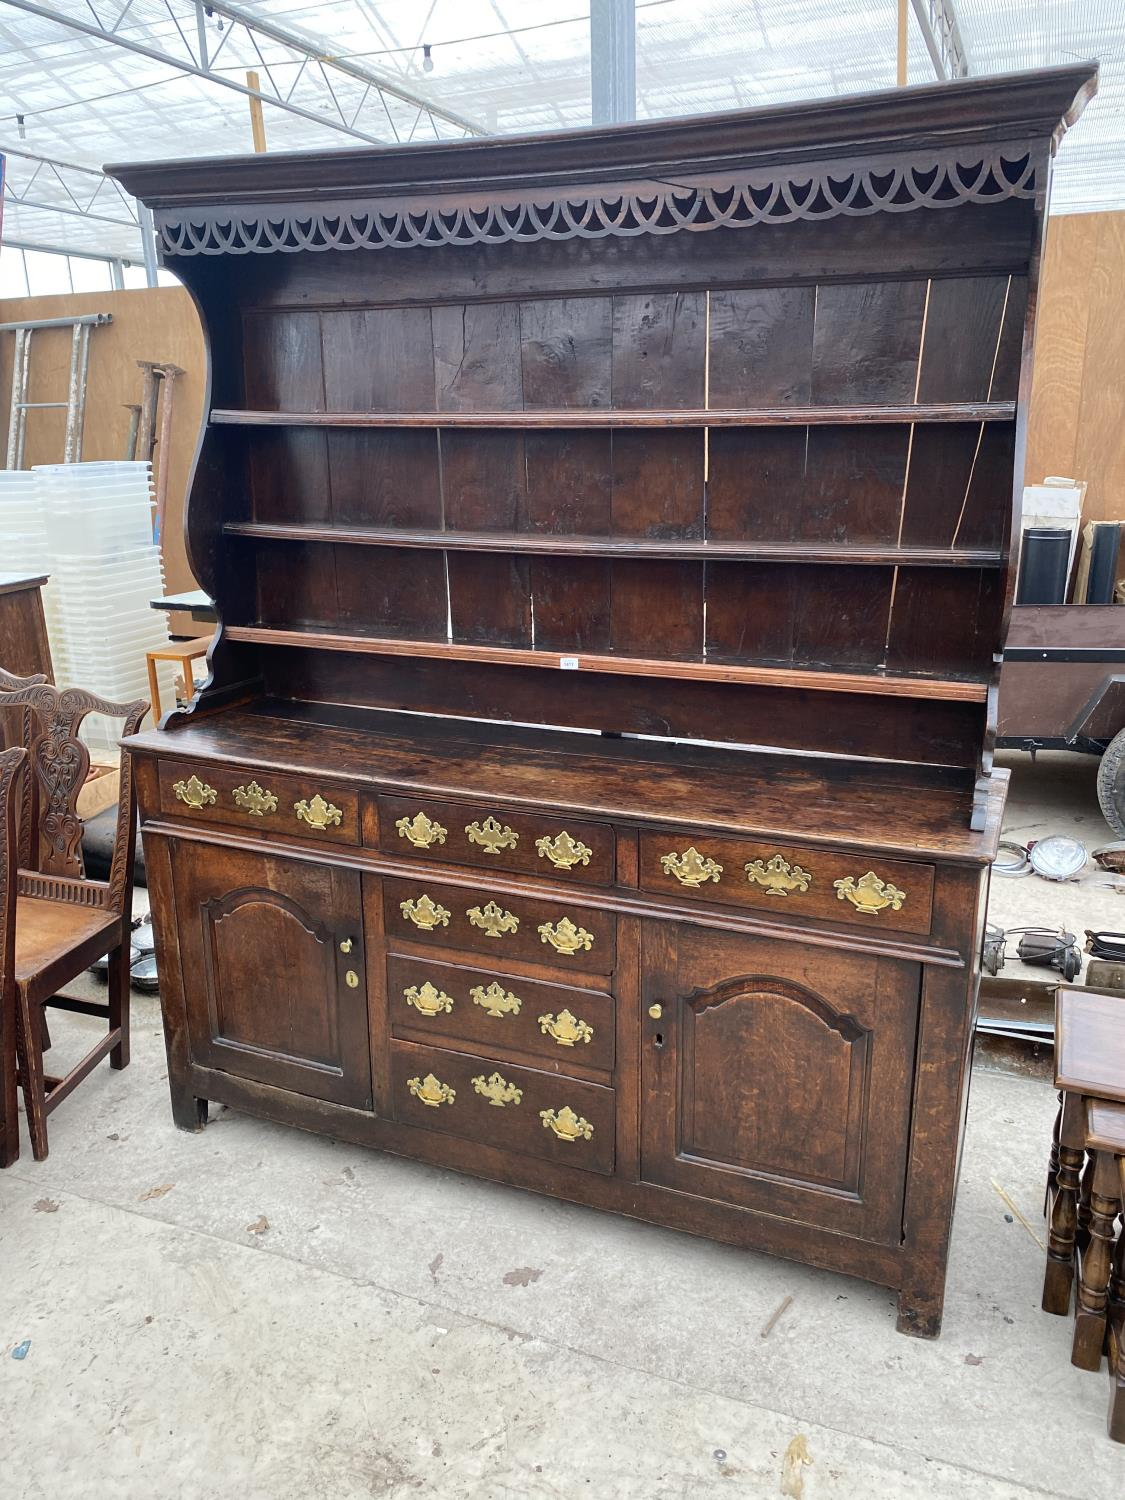 LOTS BEING ADDED DAILY - THESE PHOTOS SHOW LOTS FROM A PREVIOUS SALE - Image 8 of 14